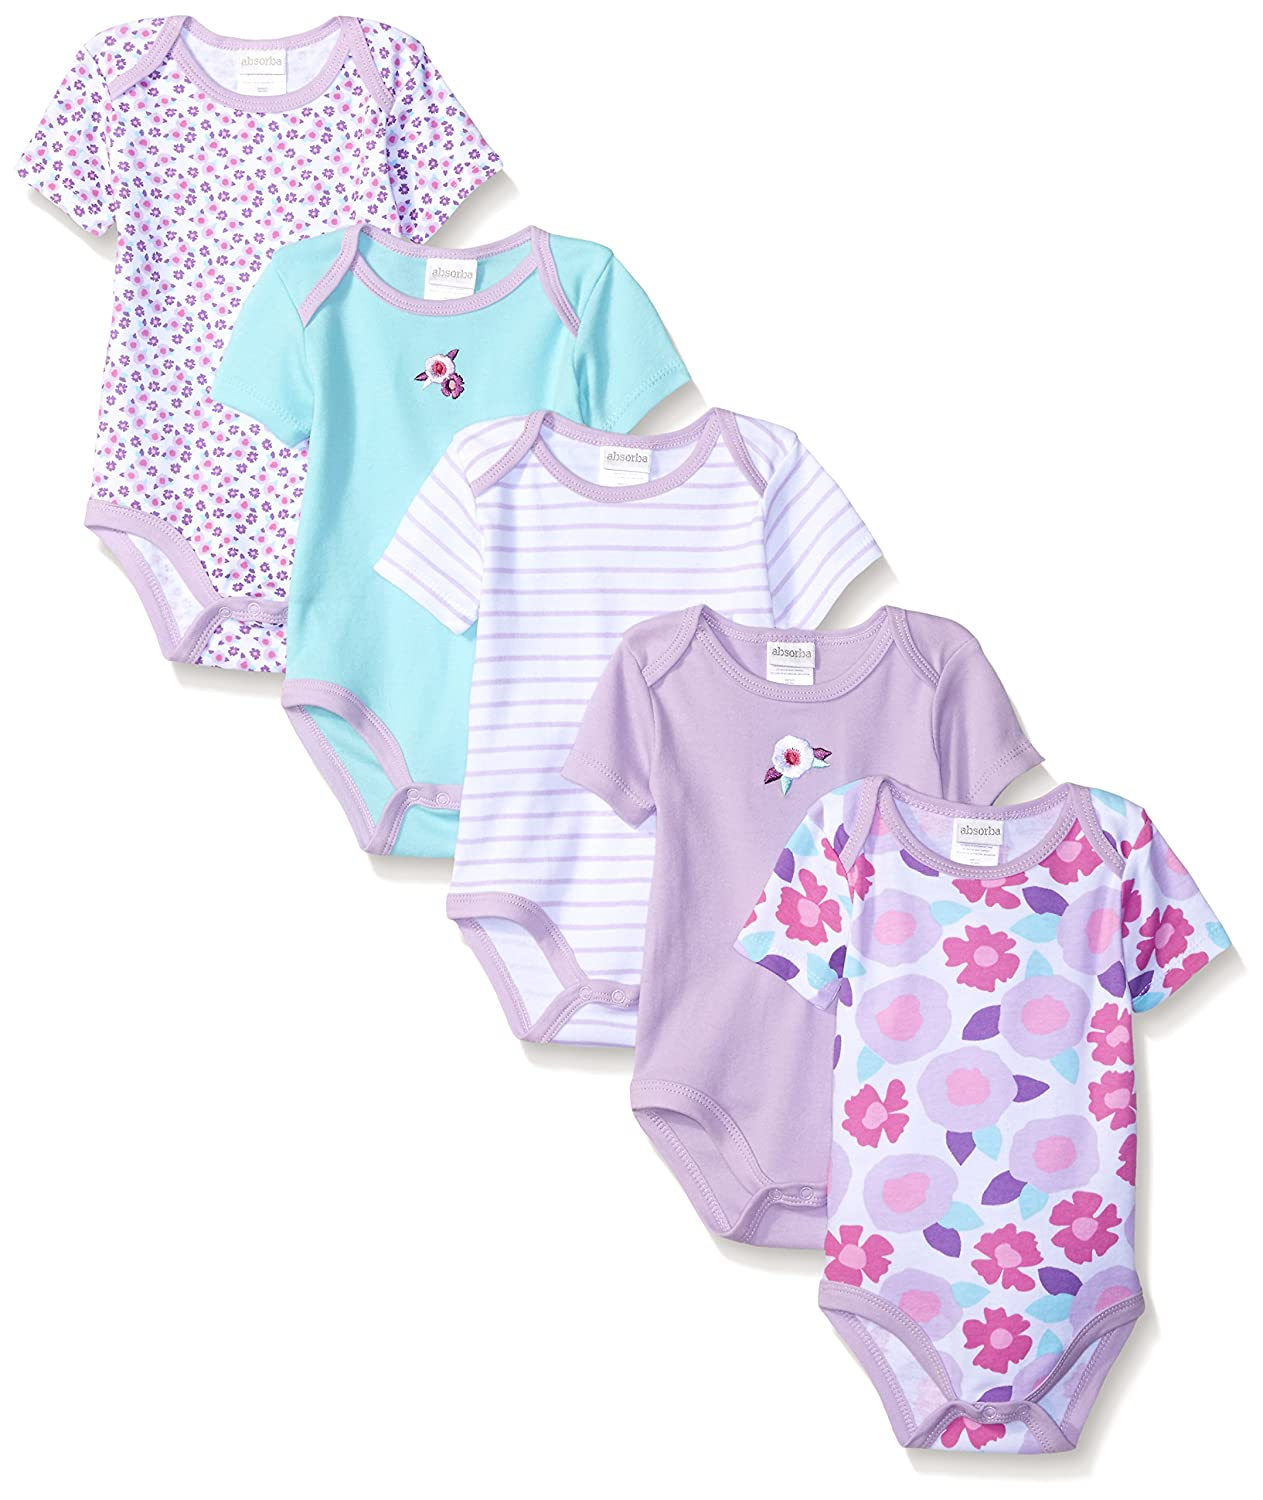 cb563cae1f0c Amazon.com  absorba Baby Girls  5 Pack Body Suits